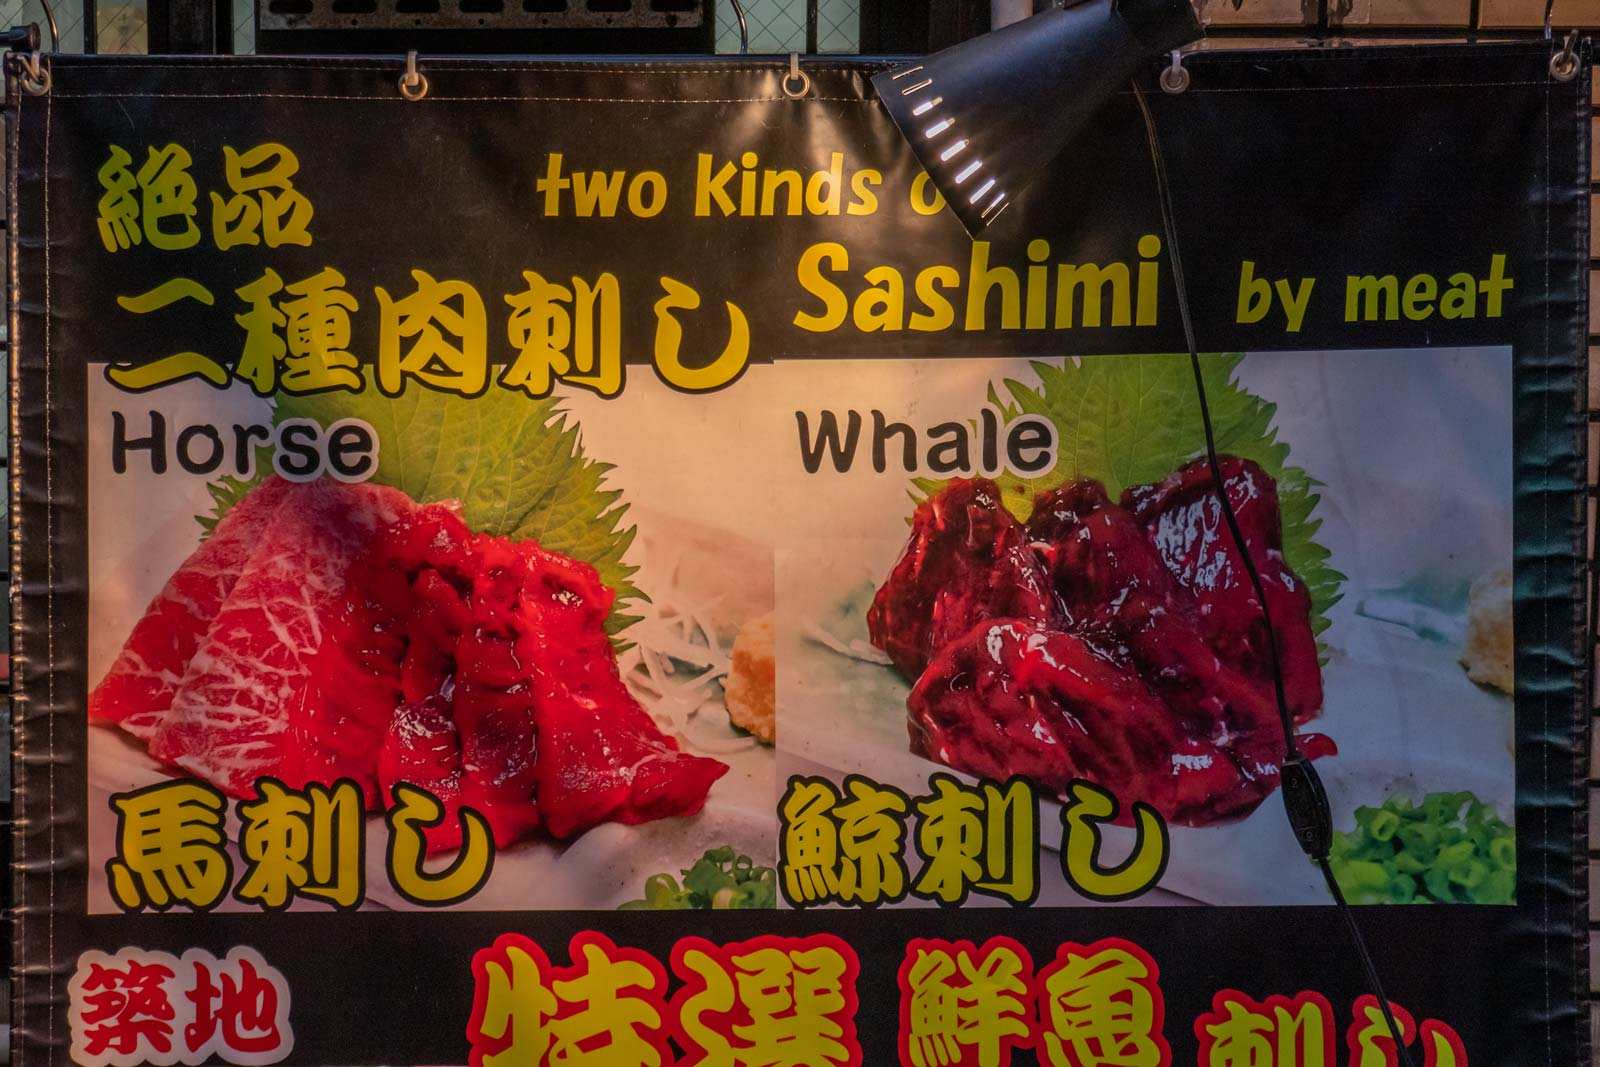 horse and whale sashimi in Tokyo Japan